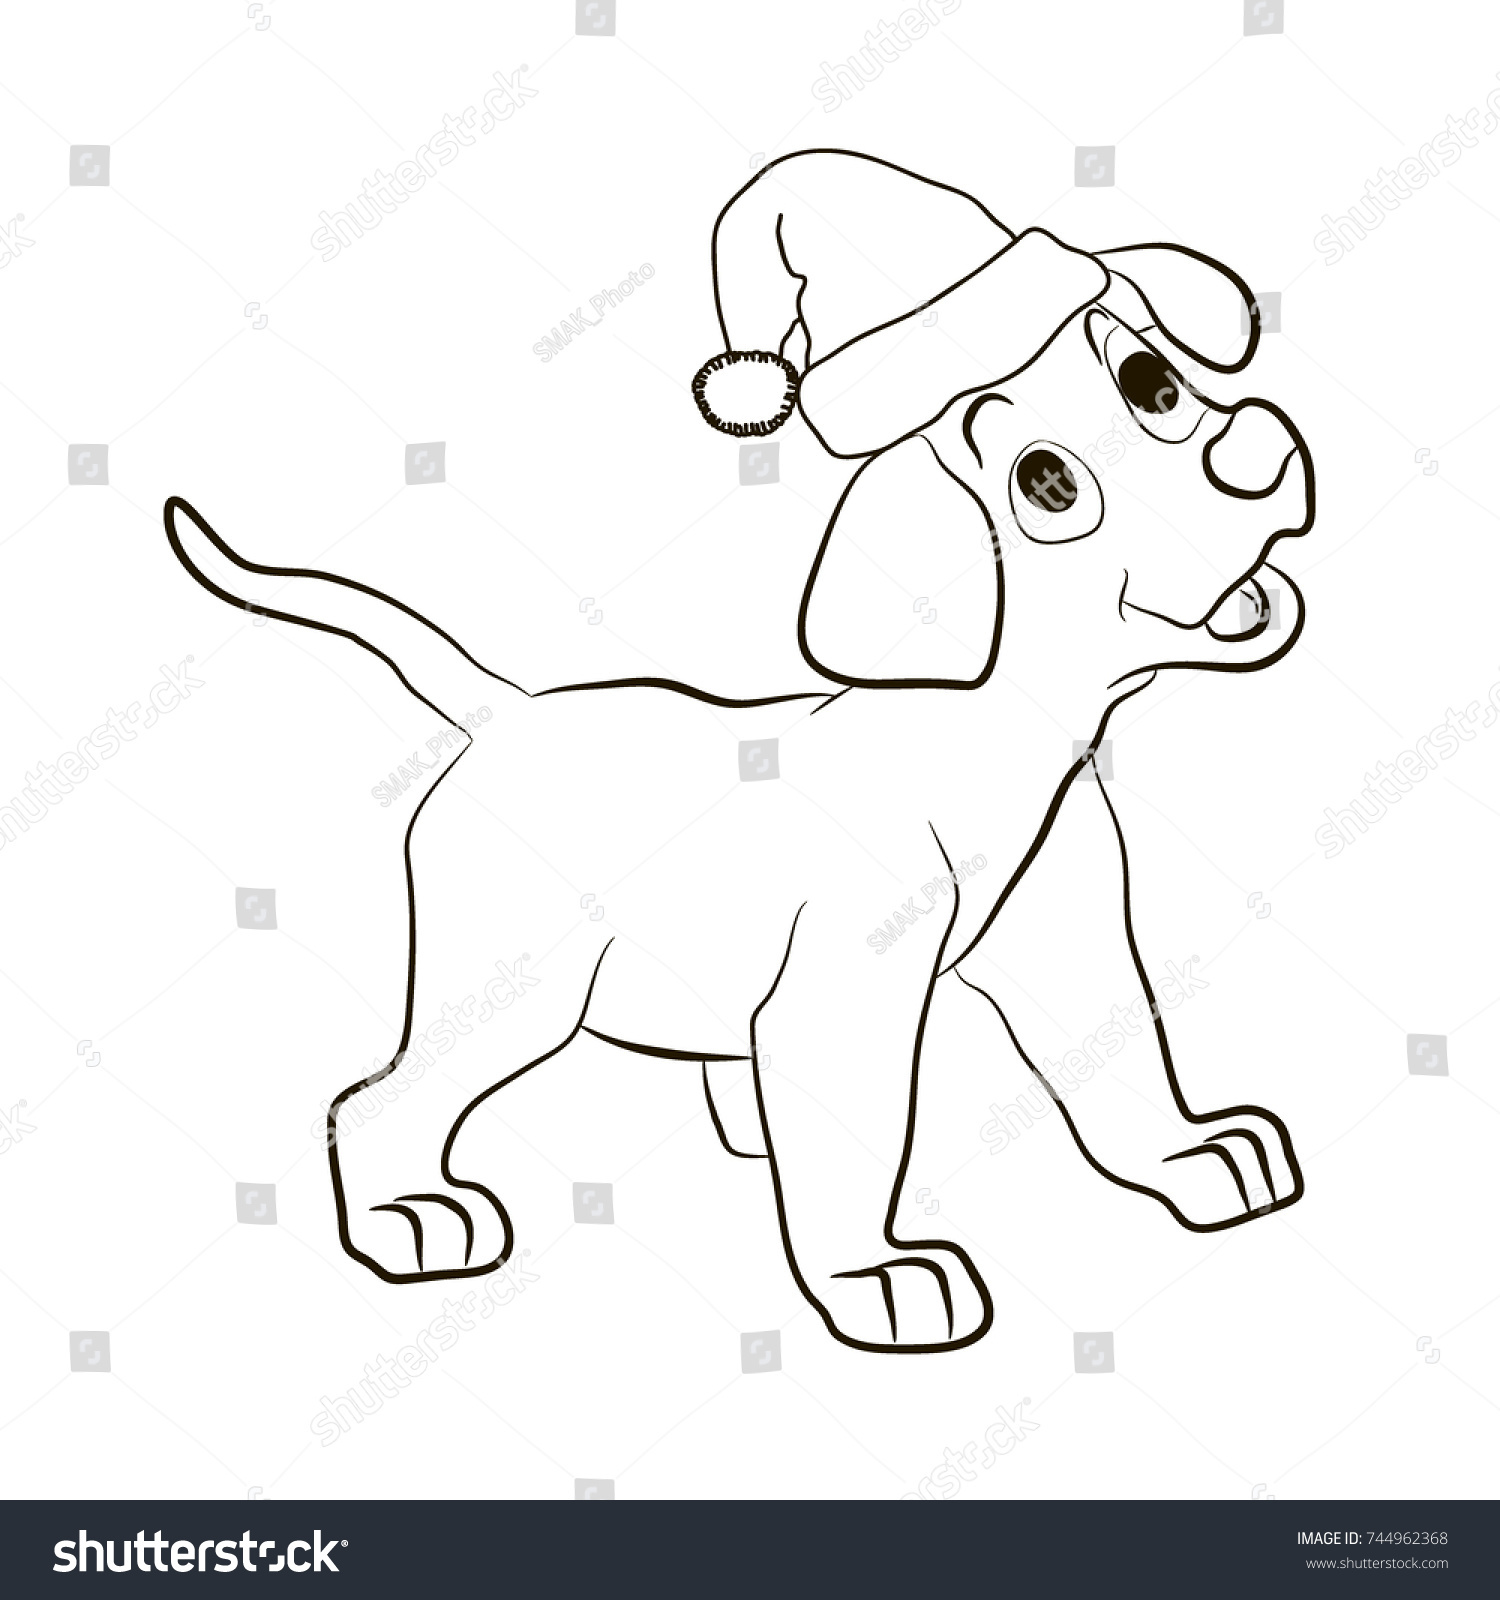 Kneeling Santa Coloring Page With Alert Famous Stocking To Color A Puppy Dog In Christmas